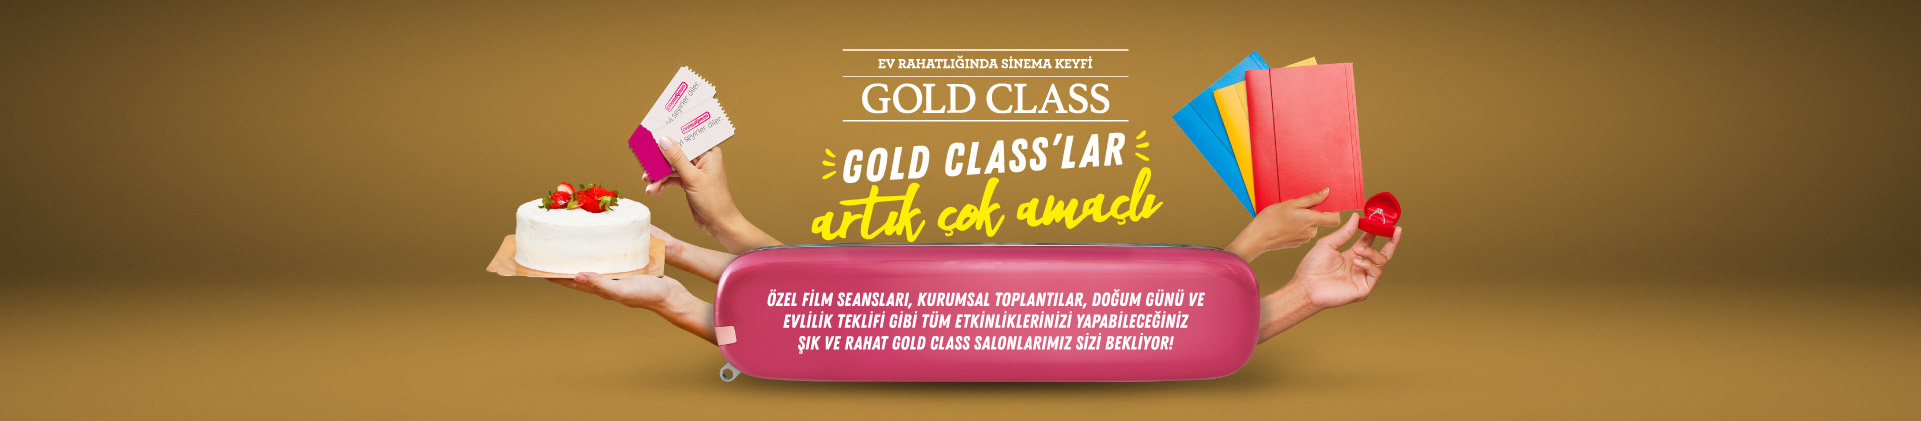 Gold Class'lar artık çok amaçlı!